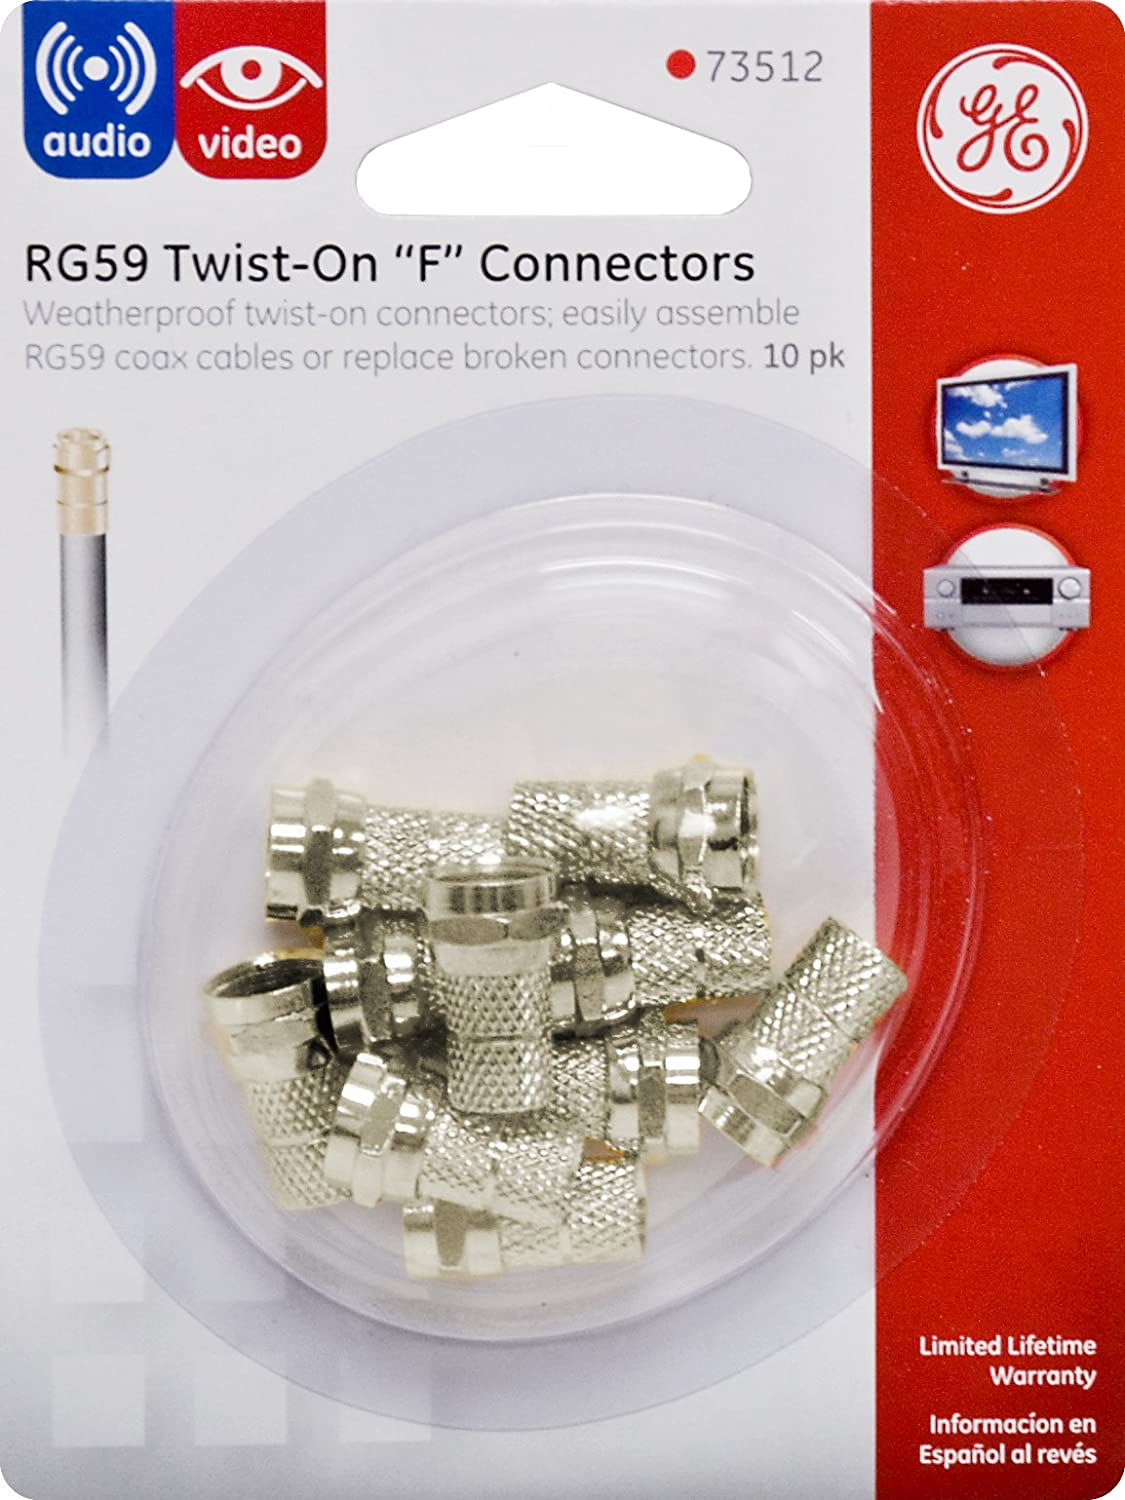 Amazon.com: GE RG59 Twist On Coaxial F Connector, 10 Pack, Weather Proof Coax Tips, 73512: Home Audio & Theater